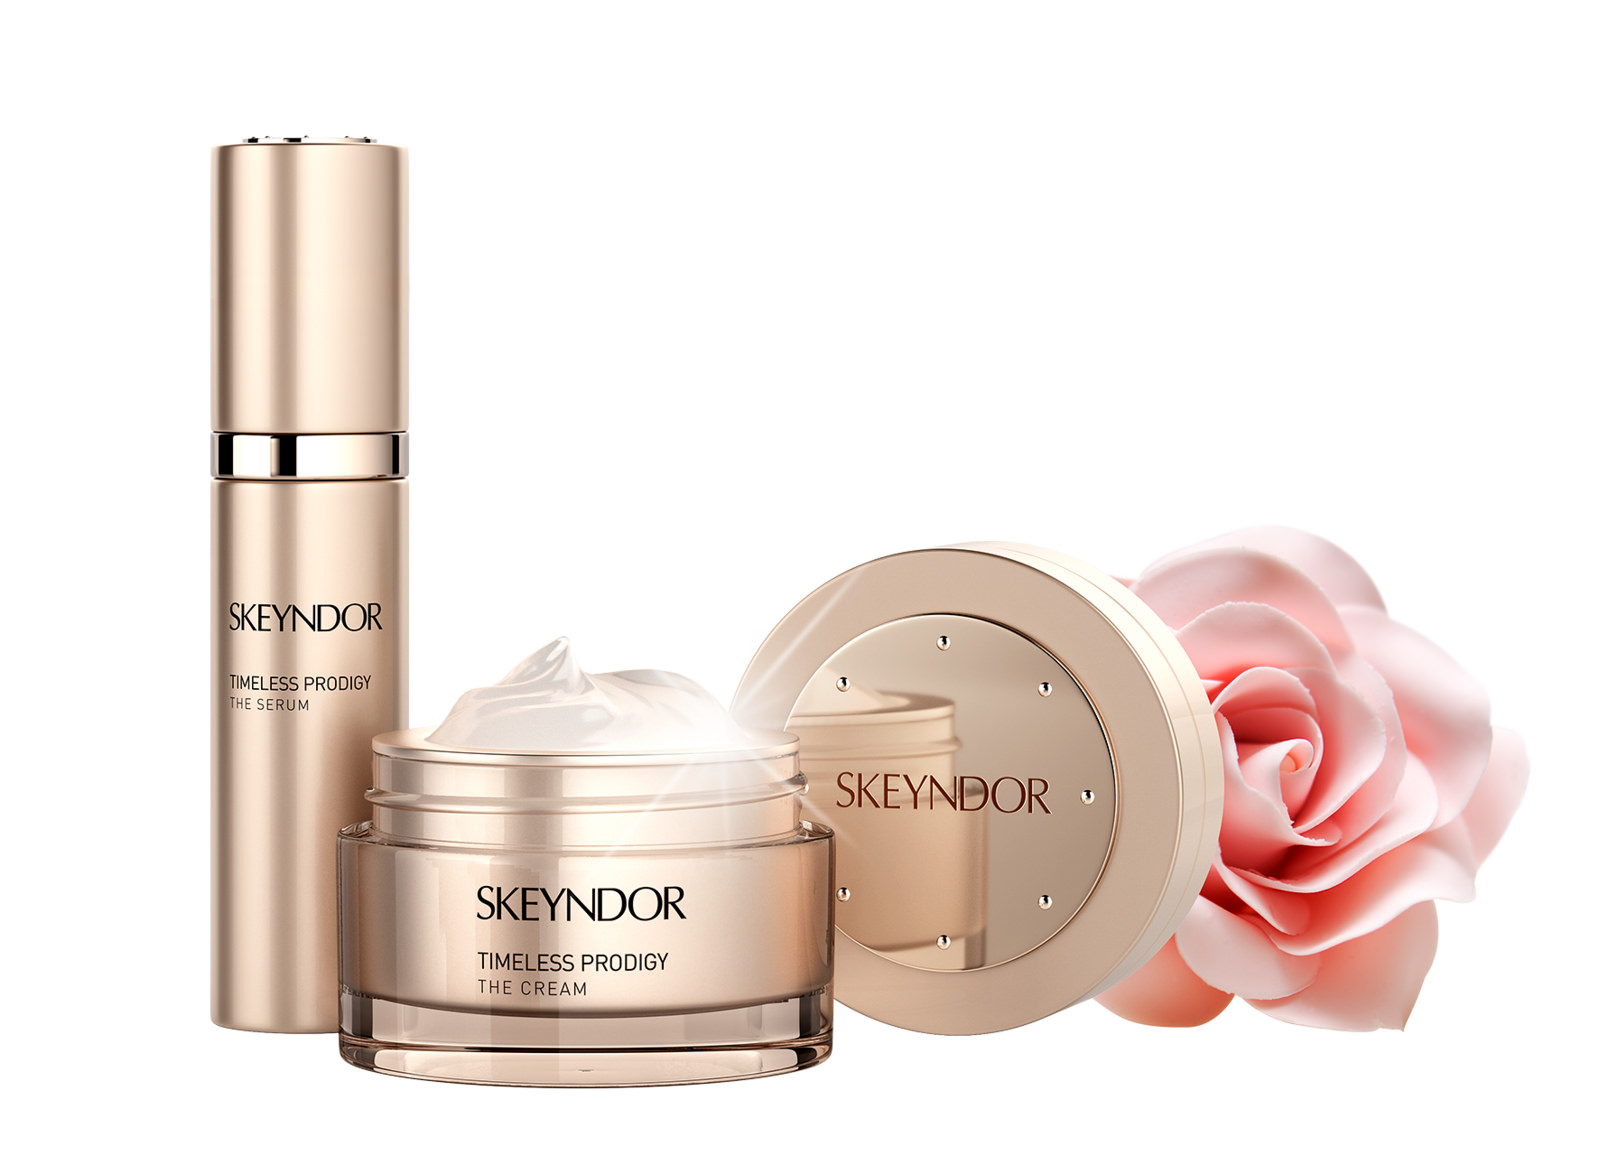 10 Spanish Cosmetic Brands You Should Know